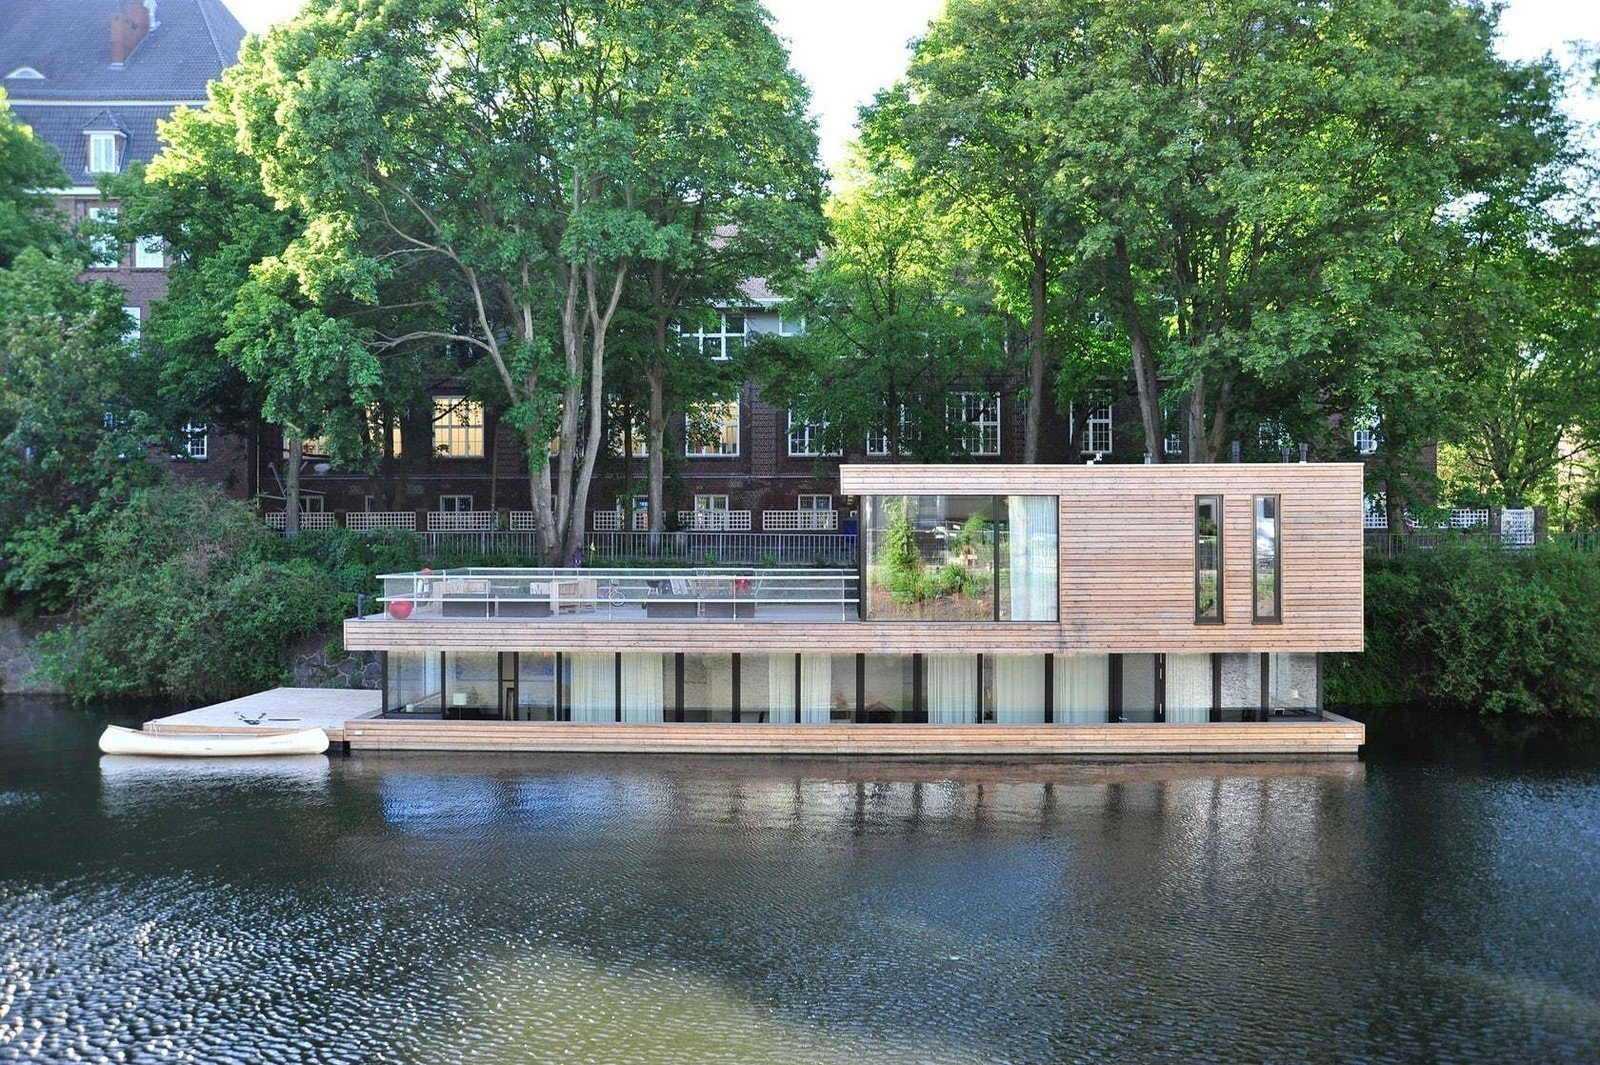 Exterior, Flat RoofLine, Boathouse Building Type, and Wood Siding Material  Photo 1 of 11 in 10 Modern Floating Homes That Offer an Aquatic Lifestyle